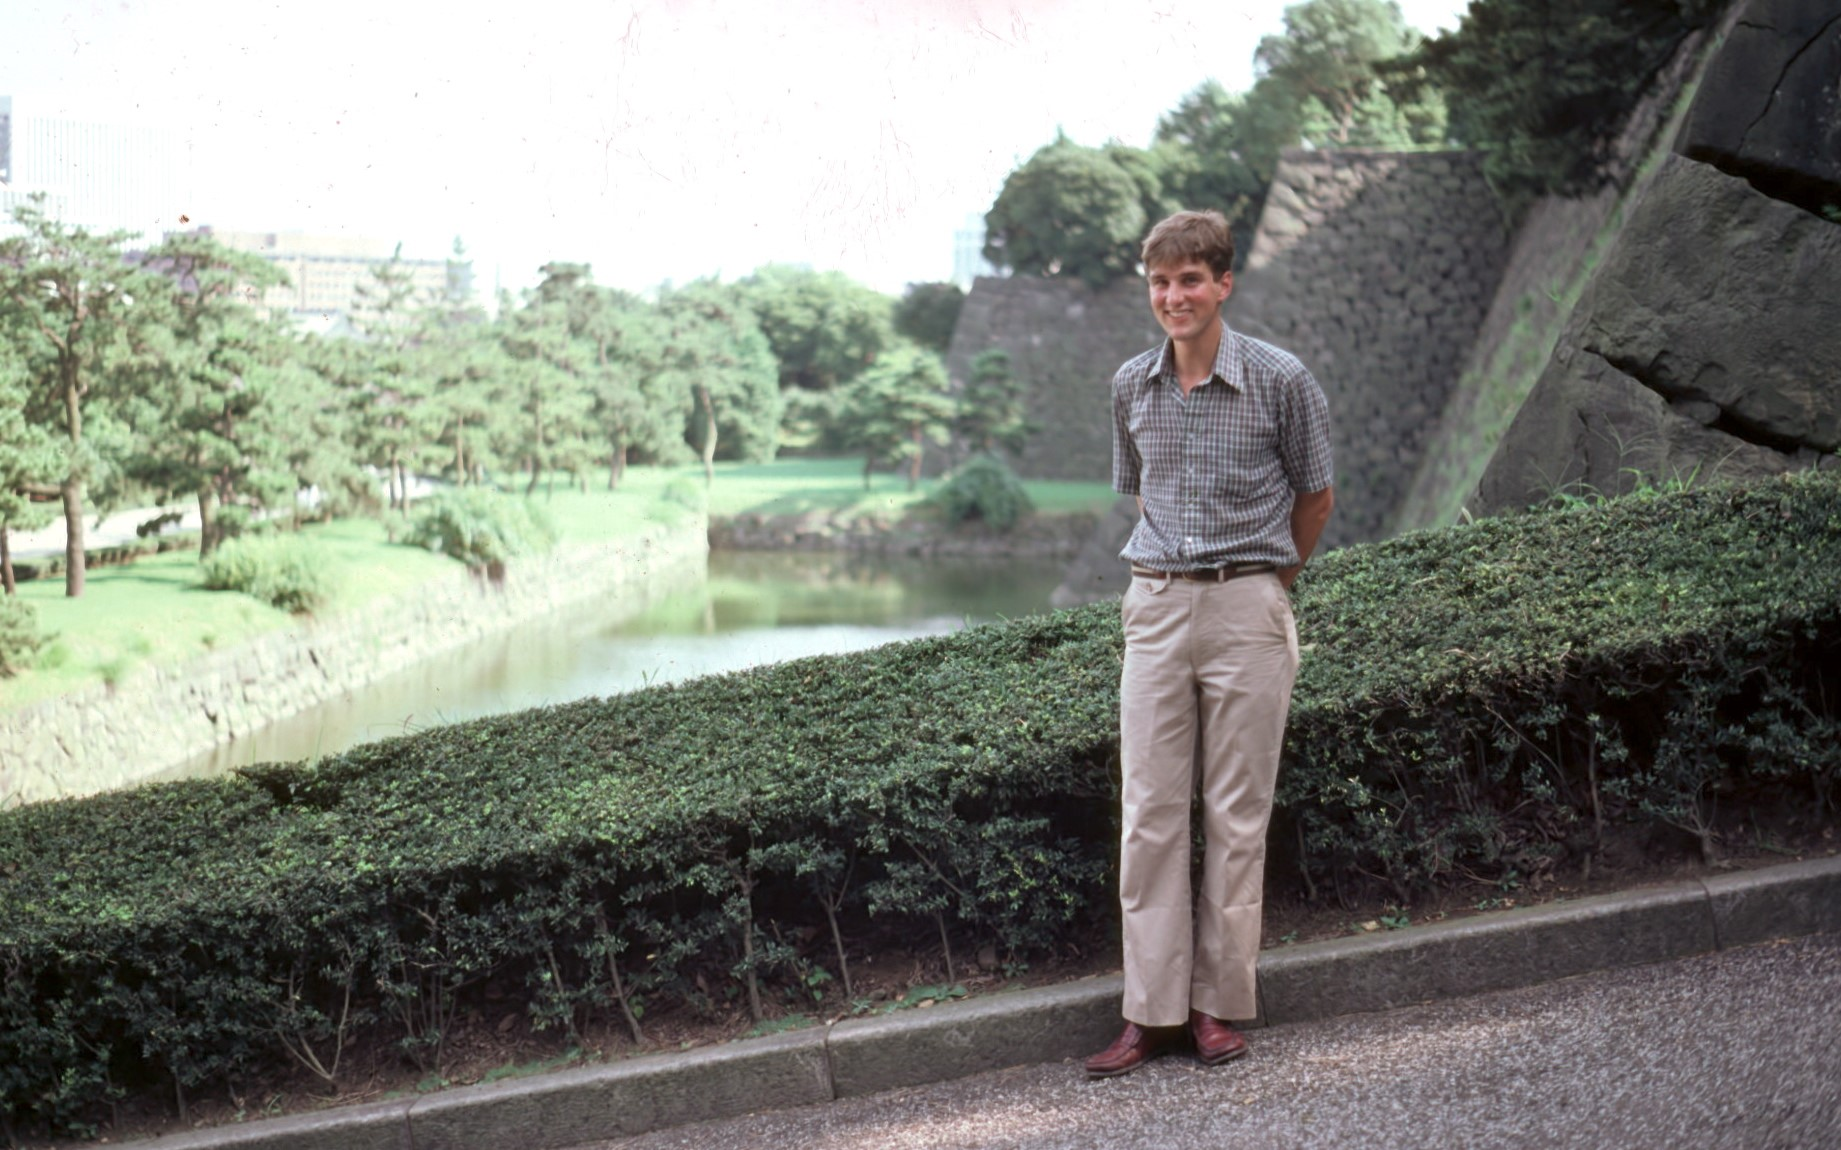 In front of the Imperial Palace. Tokyo, 1982.